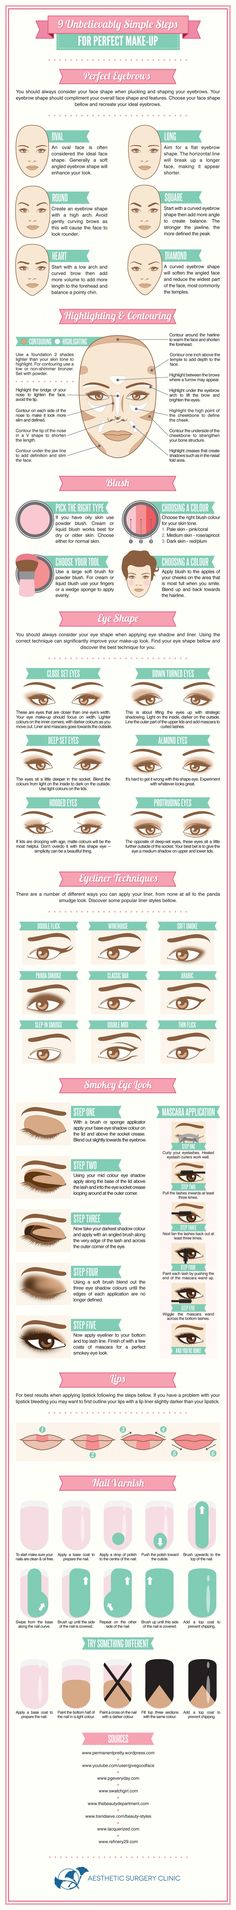 Simple Steps For Perfect Make-Up I love this! Perfect for picking a look for a date or an event